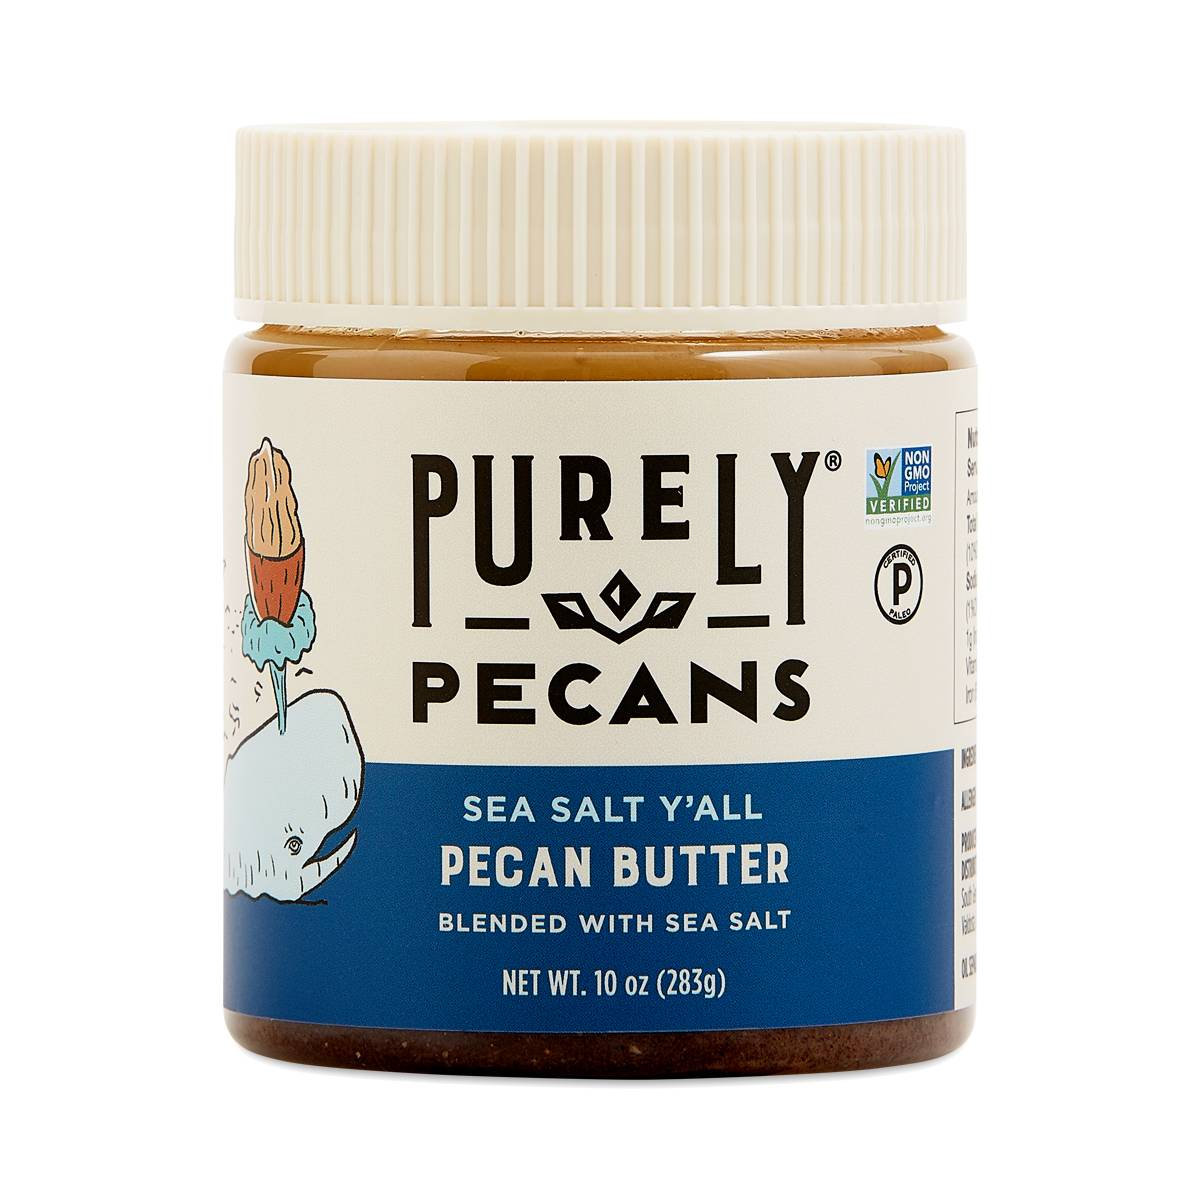 Sea Salt Y'all Pecan Butter - Purely Pecans - Certified Paleo, PaleoVegan by the Paleo Foundation